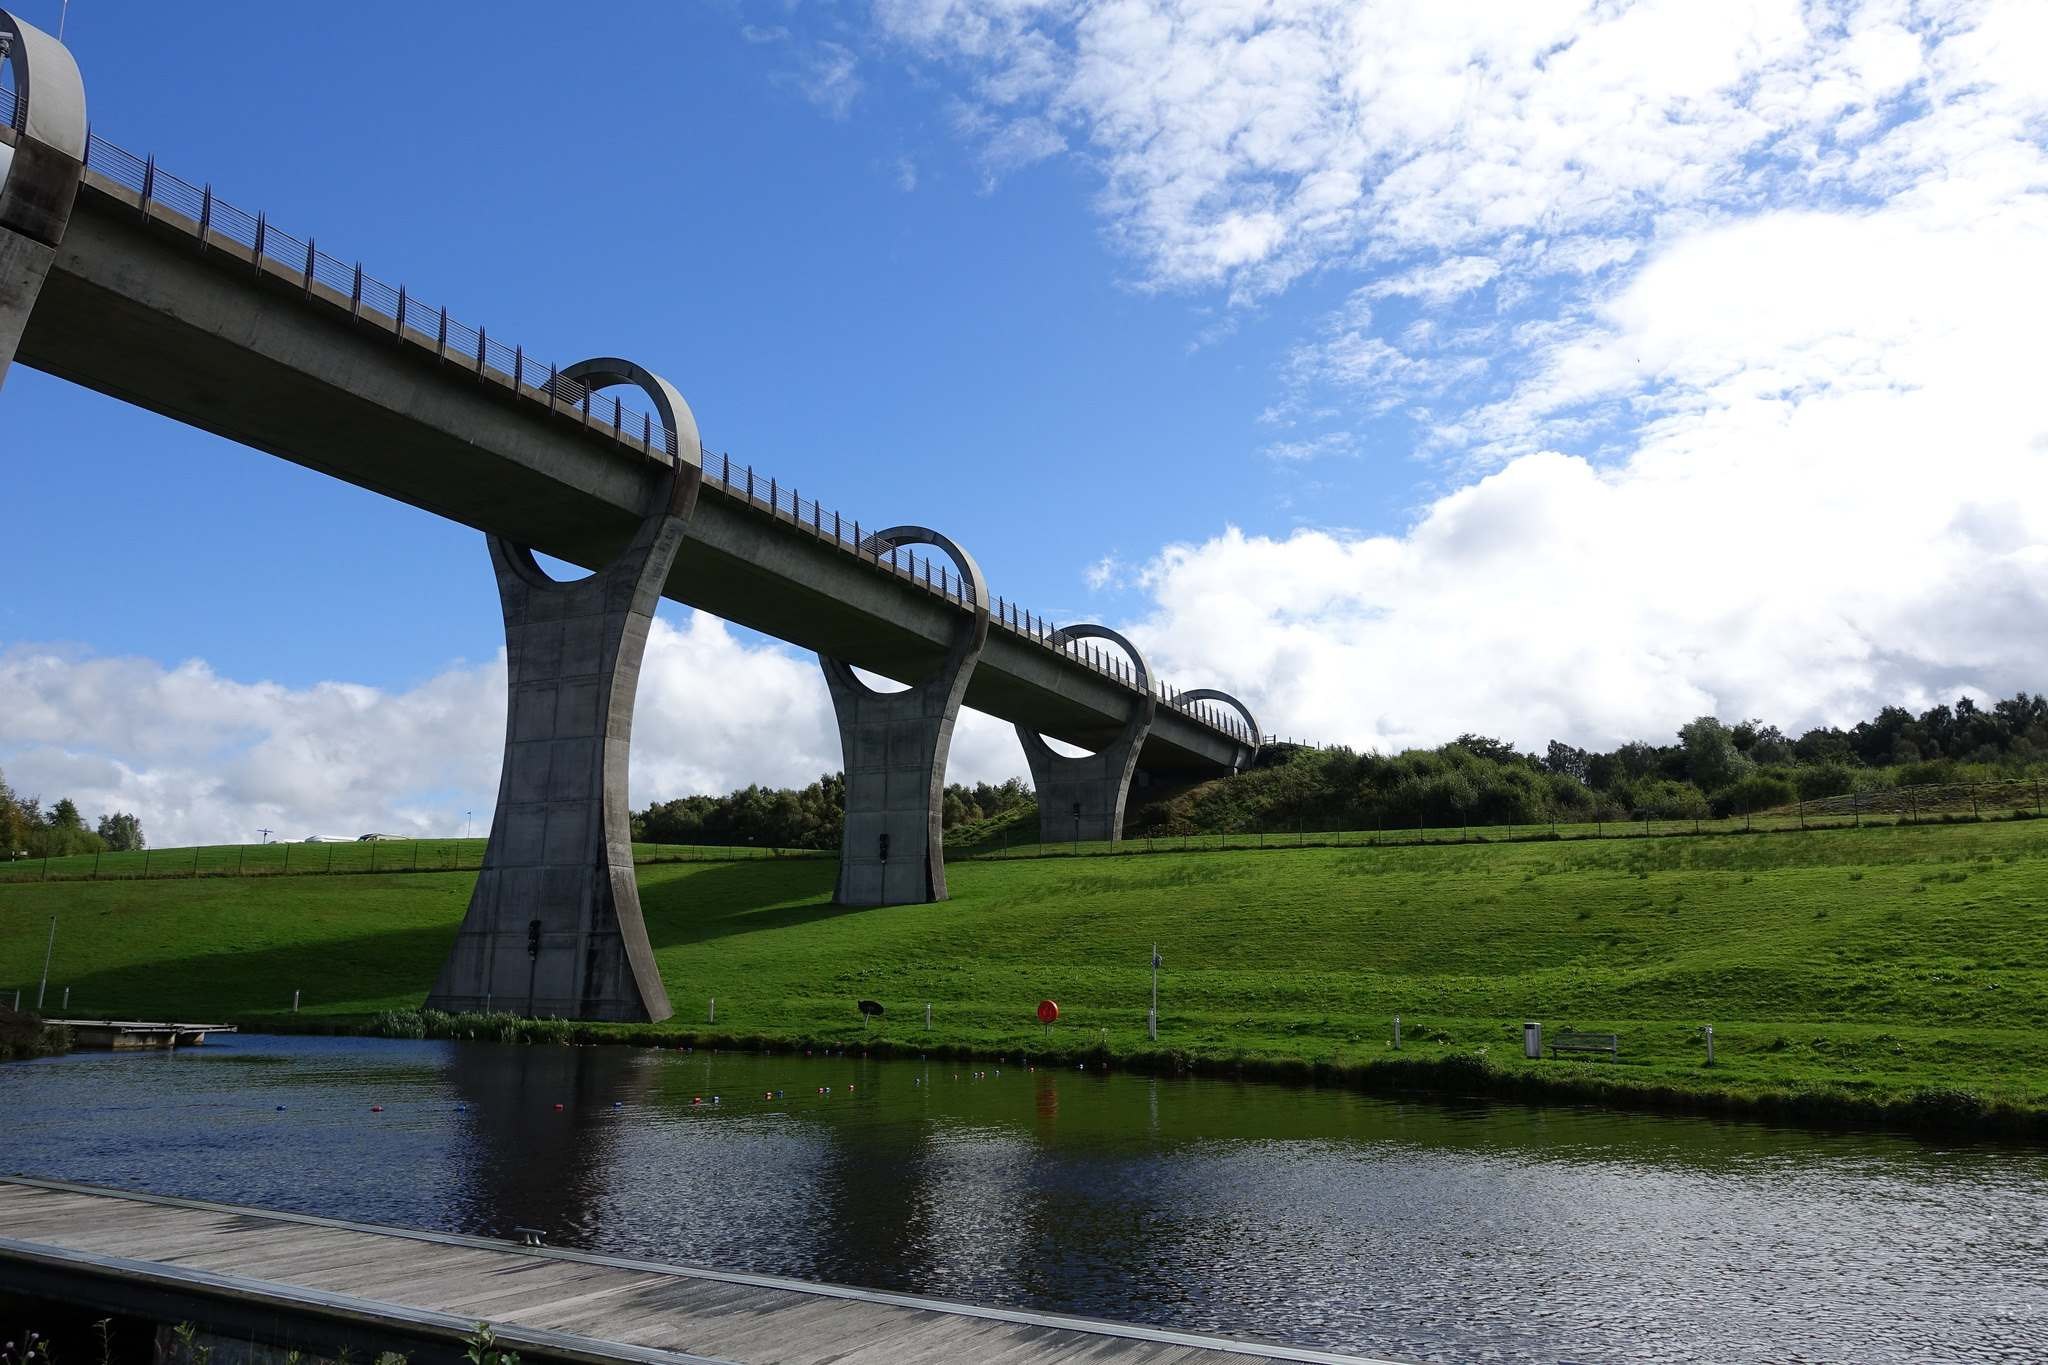 falkirk wheel2 The Falkirk Wheel   Rotating Boat Lift in Scotland